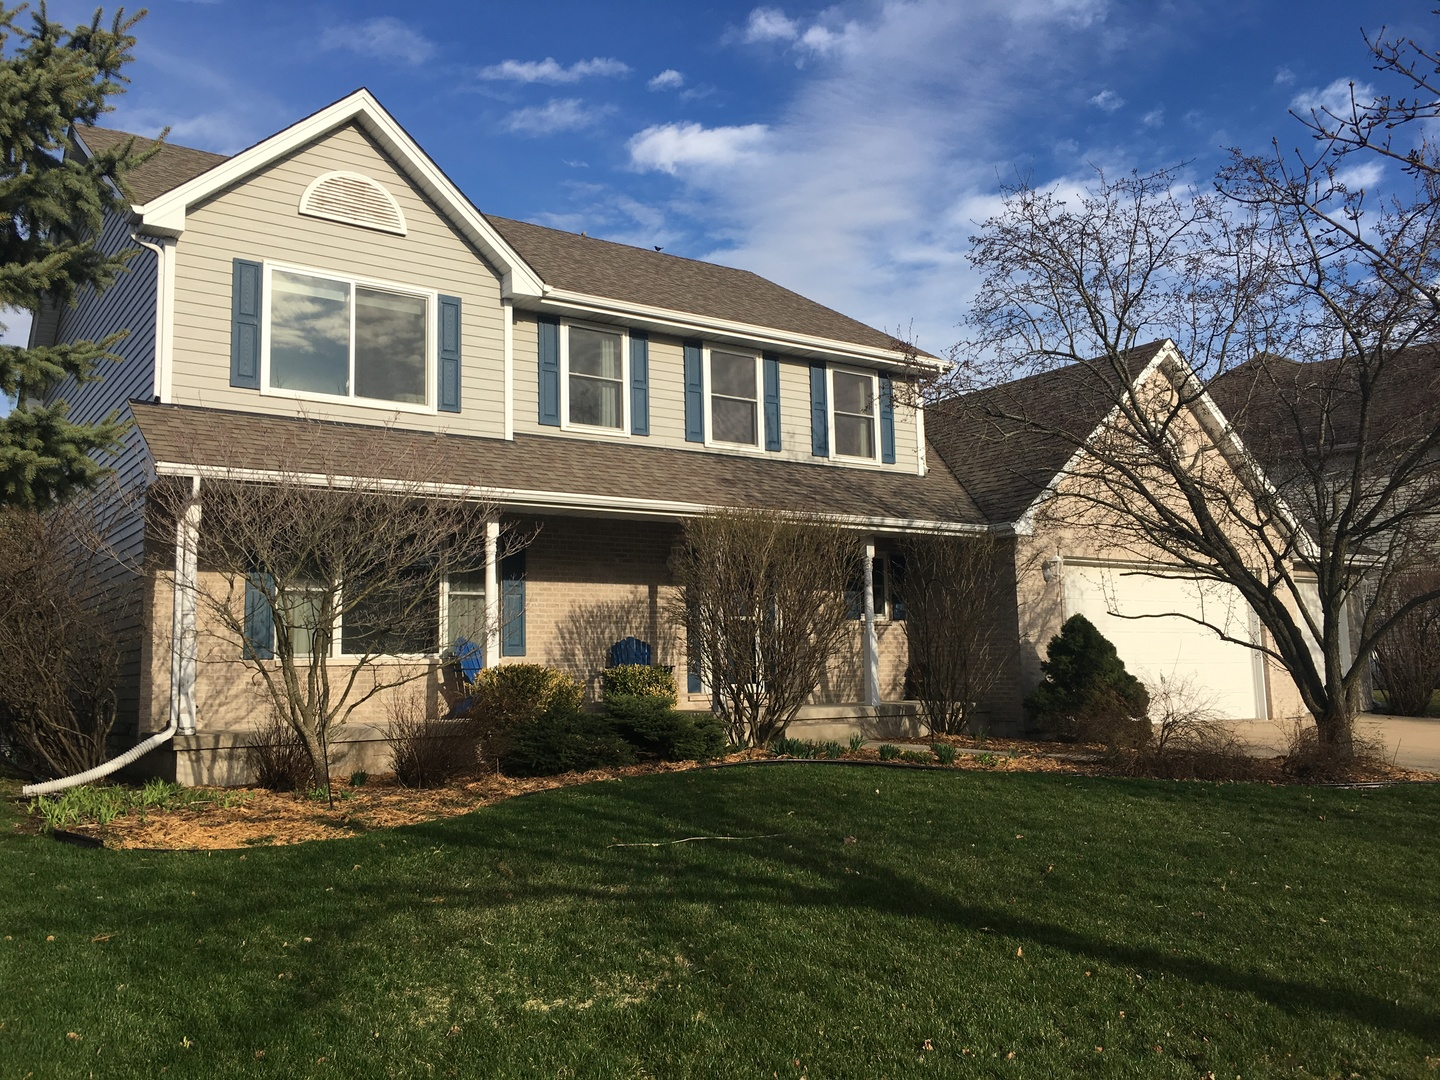 Photo for 1340 Yorkshire Drive N, SYCAMORE, IL 60178 (MLS # 10339319)